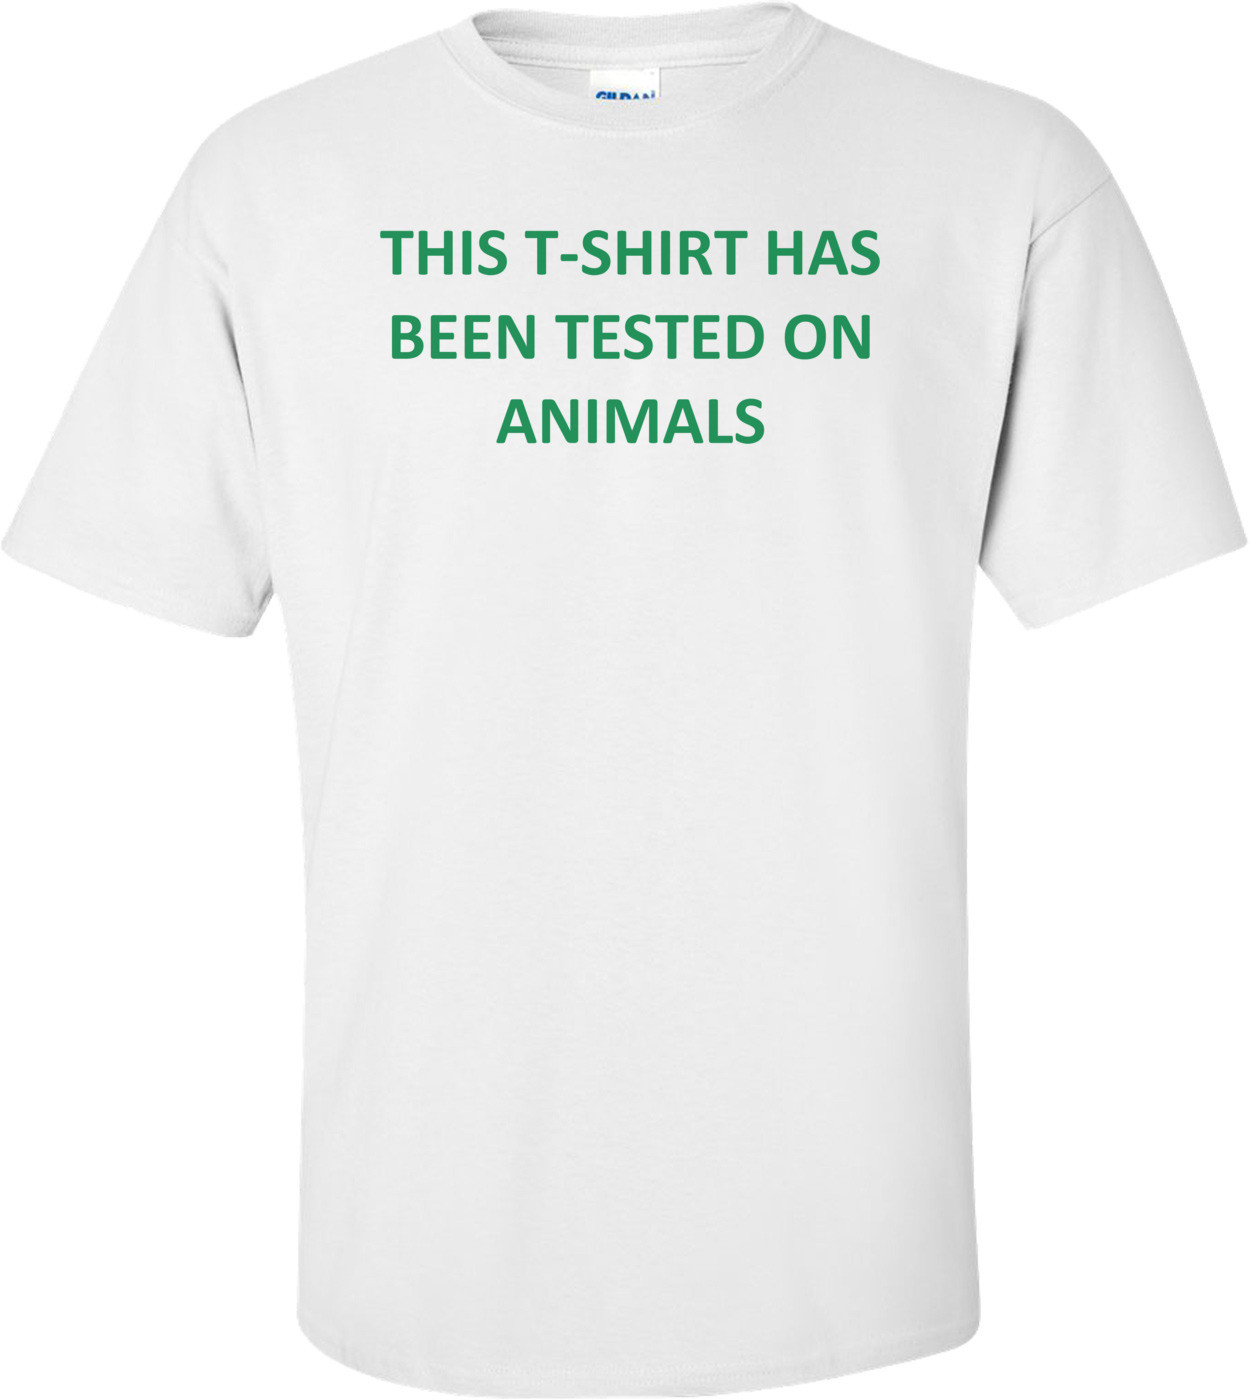 THIS T-SHIRT HAS BEEN TESTED ON ANIMALS Shirt